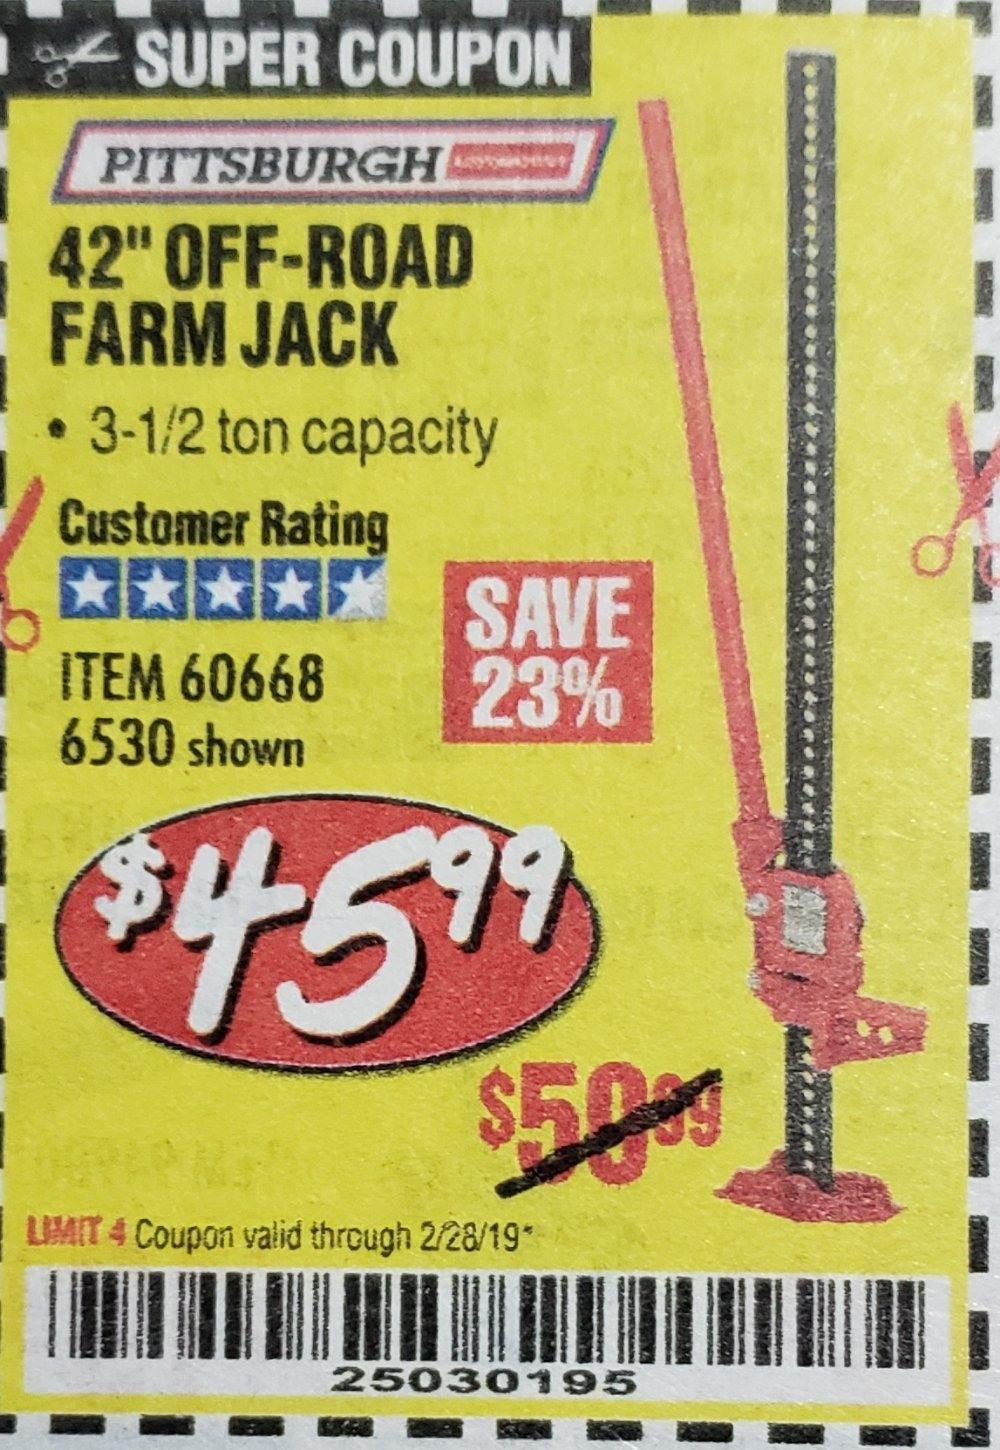 Harbor Freight Coupon, HF Coupons - 42